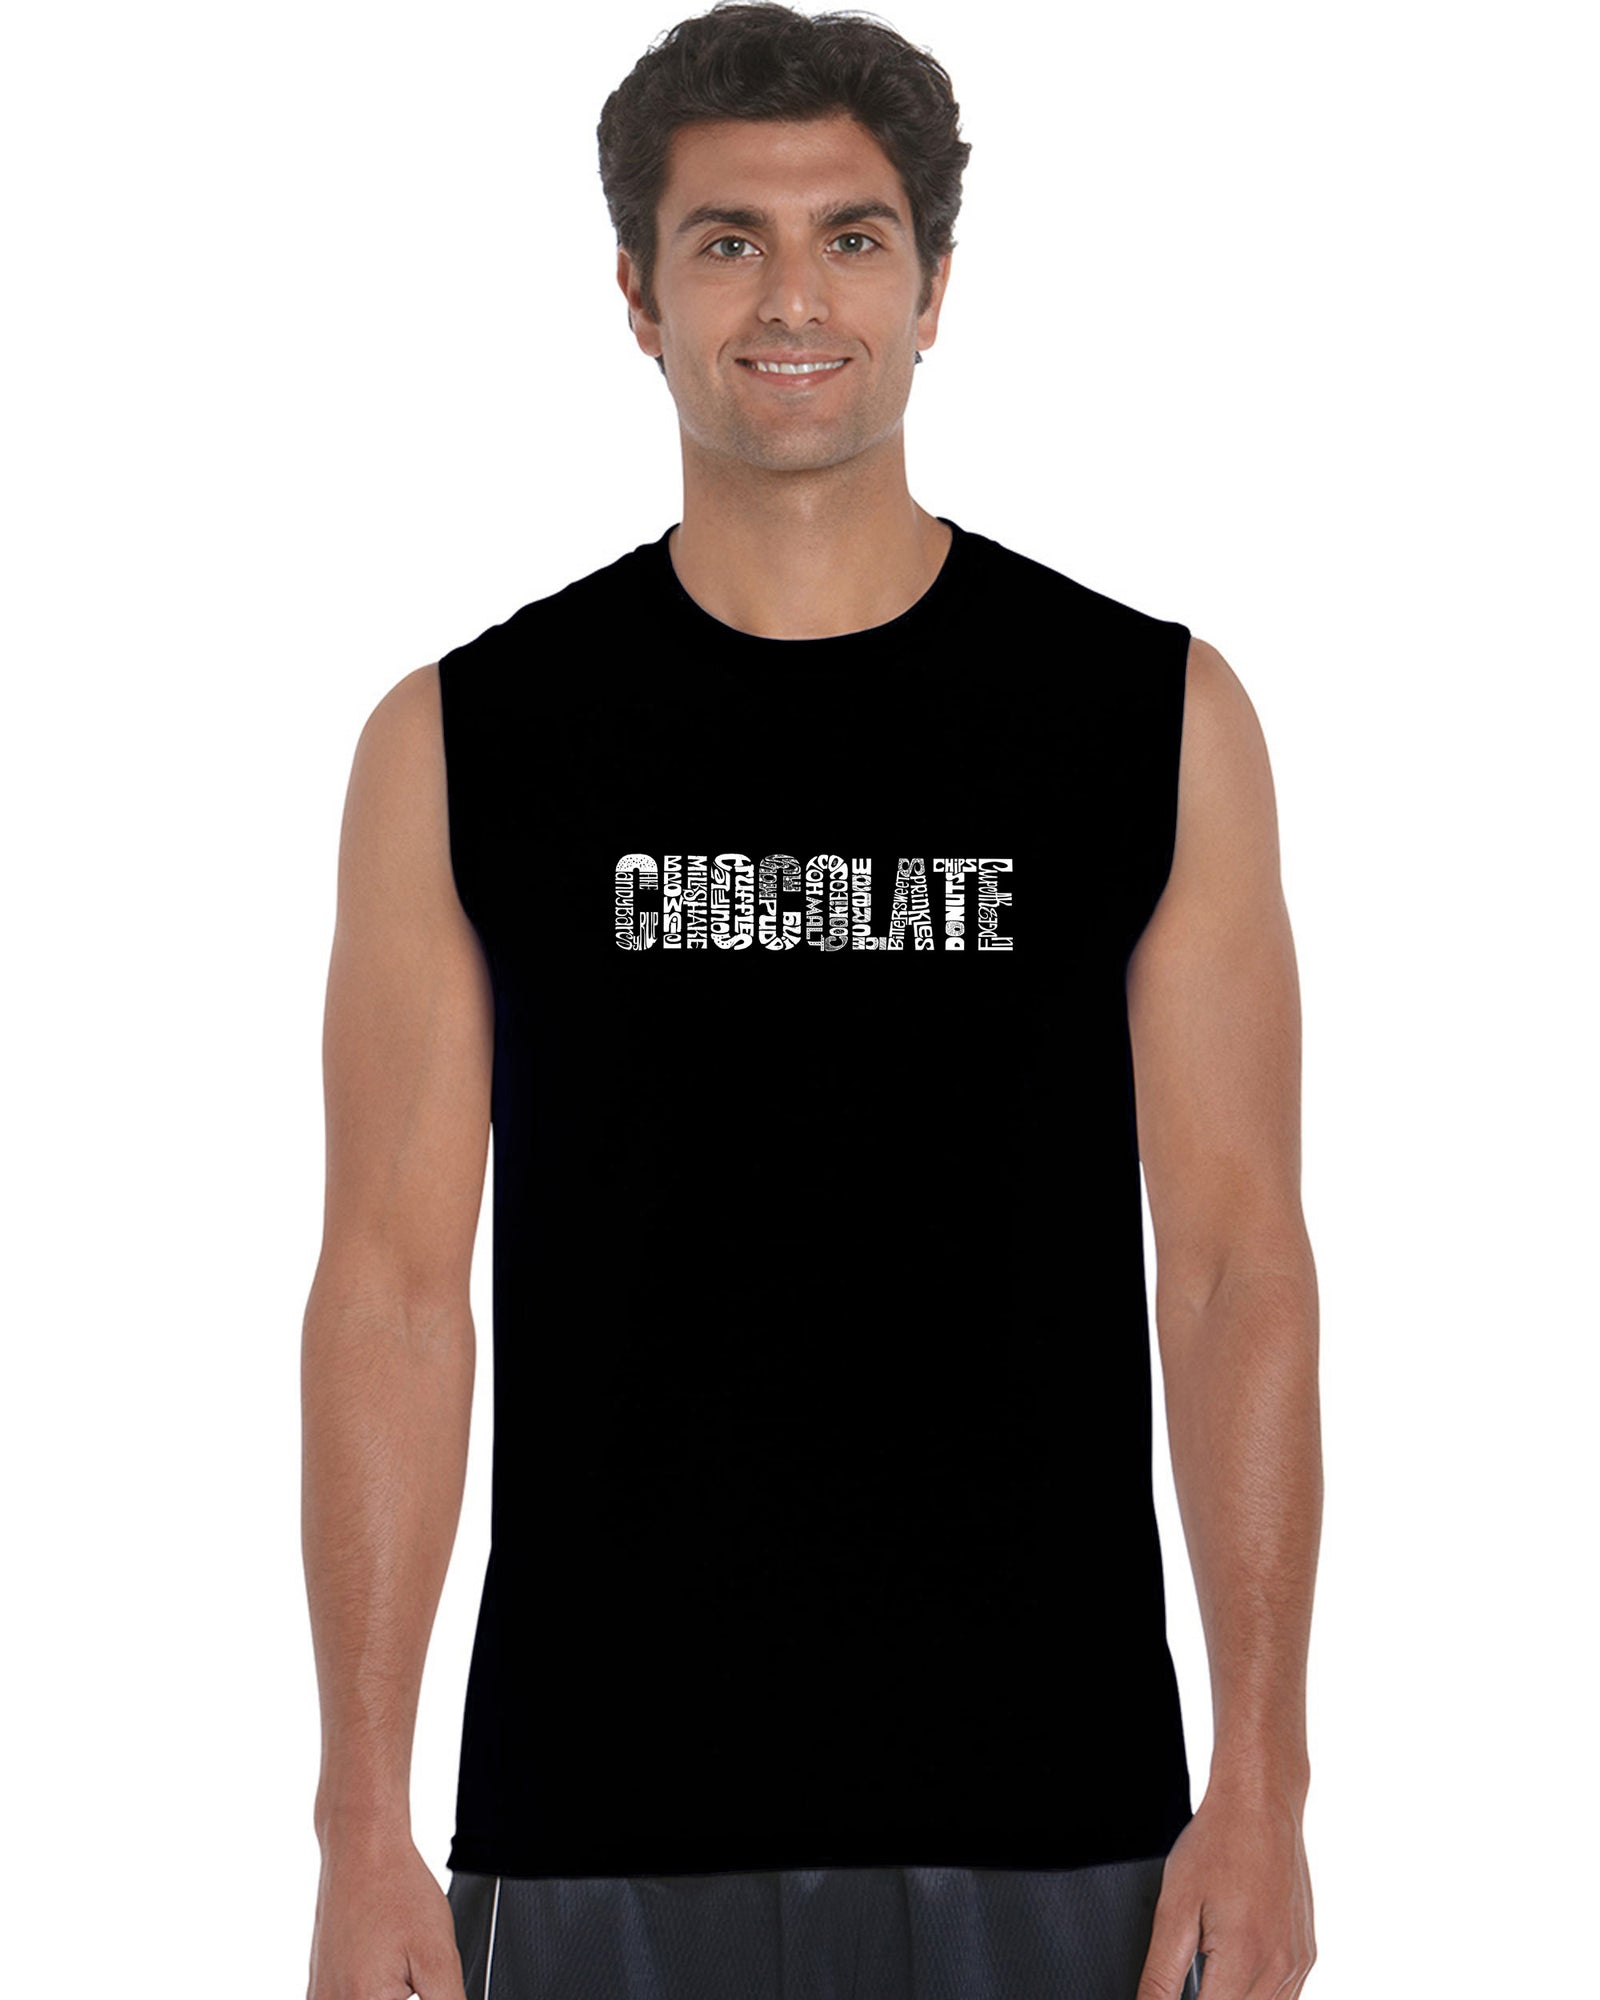 Men's Sleeveless T-shirt - Different foods made with chocolate